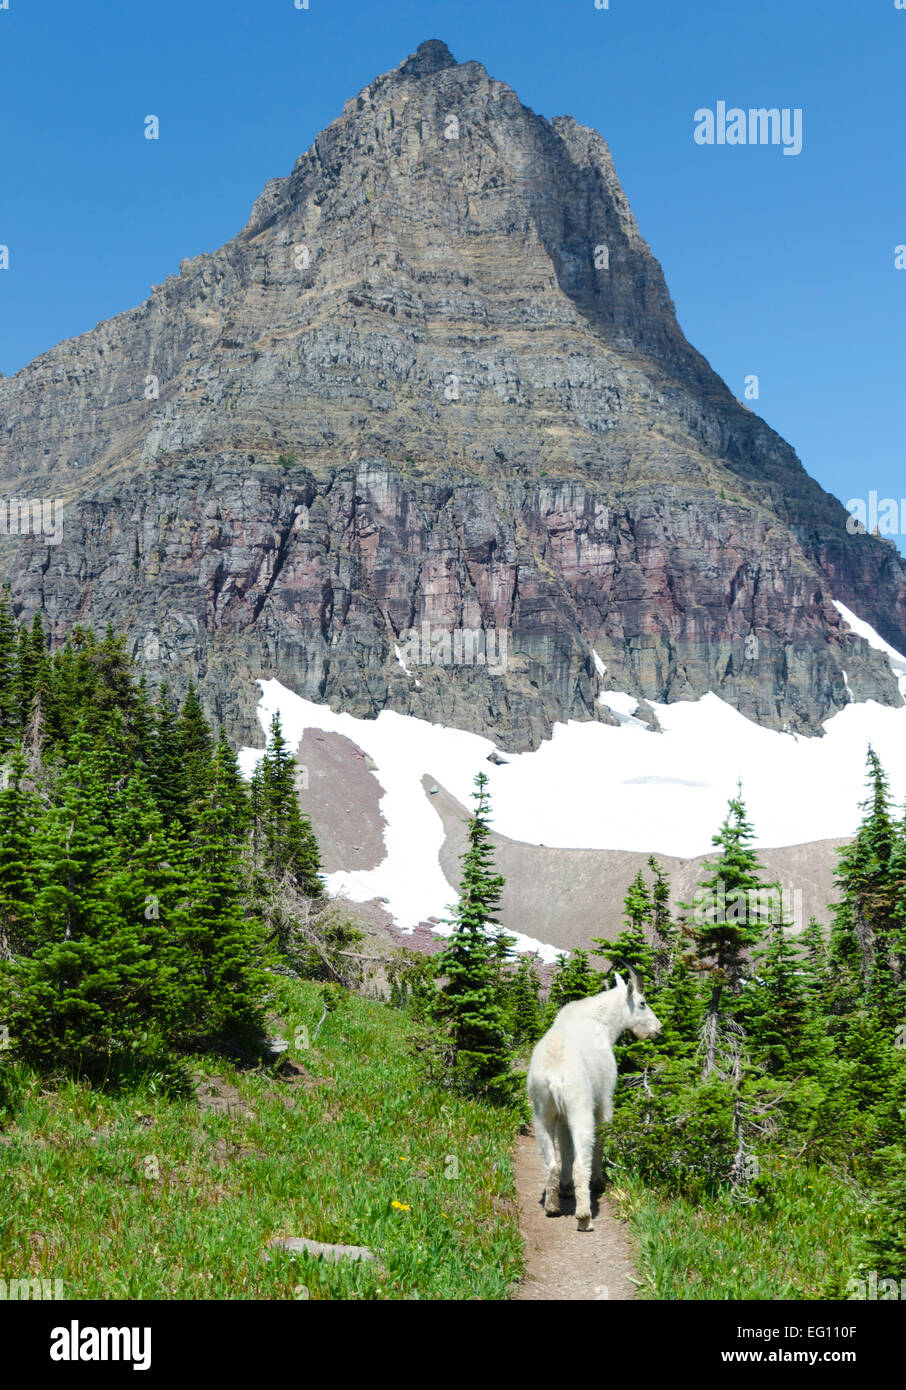 My hiking buddy, a mountain goat - Glacier NP, MT - Stock Image